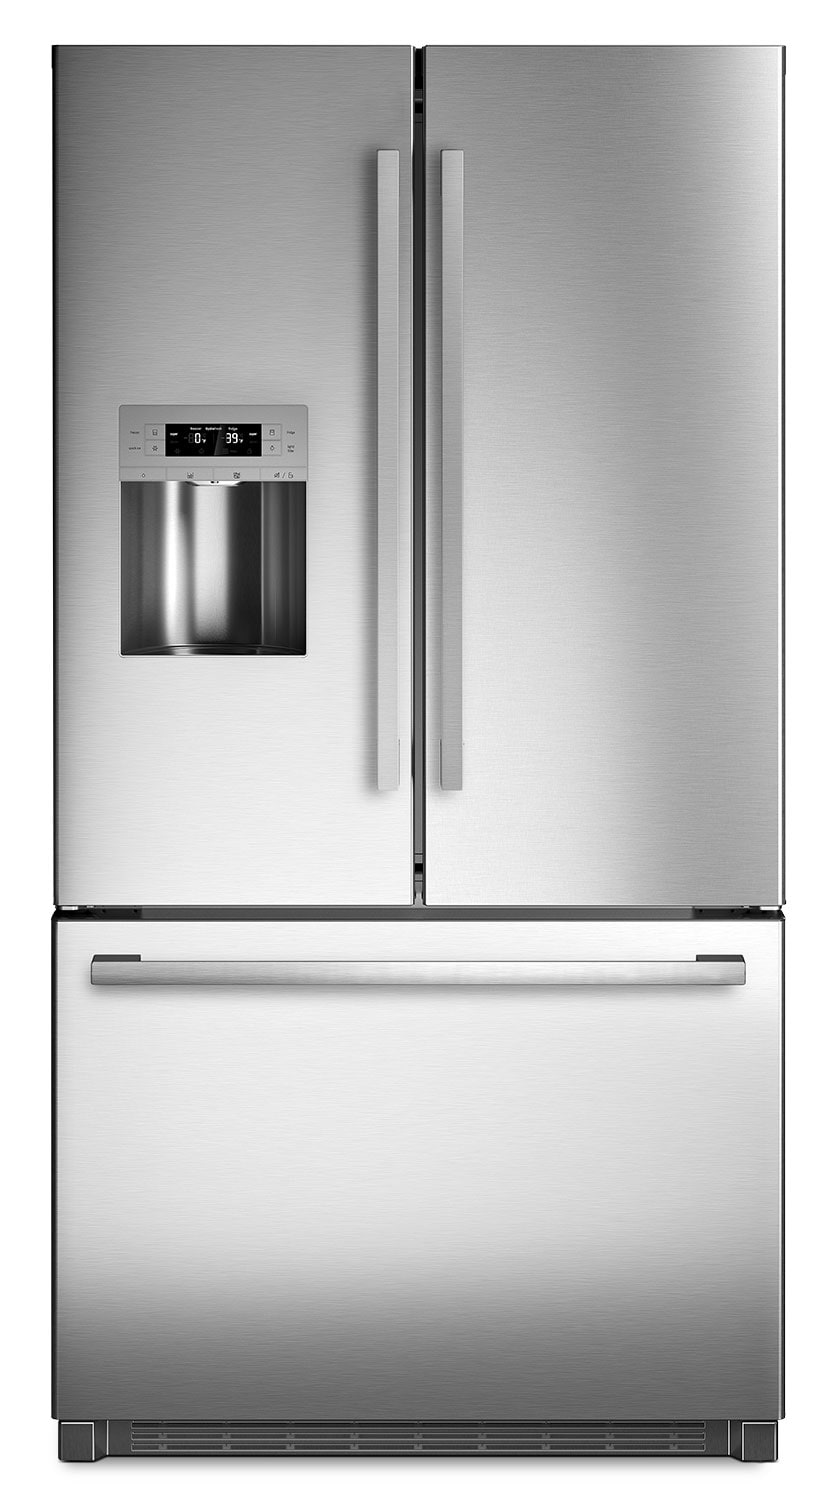 Bosch Stainless Steel French-Door Refrigerator (25.5 Cu. Ft.) - B26FT80SNS